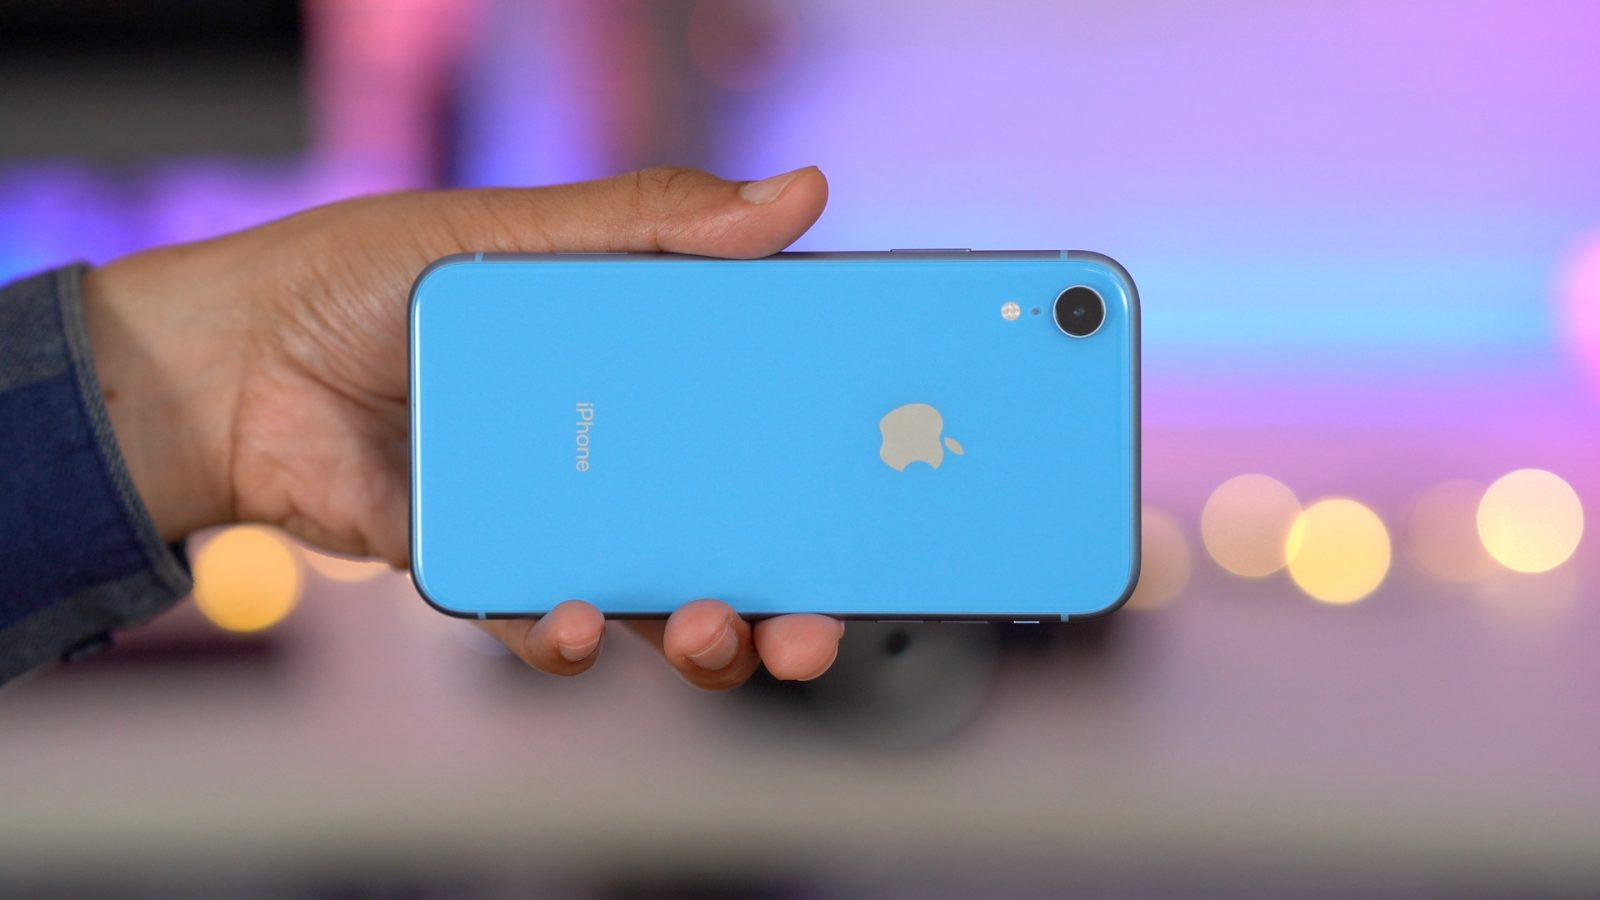 Sprint offers iPhone XR for FREE when you trade-in a working